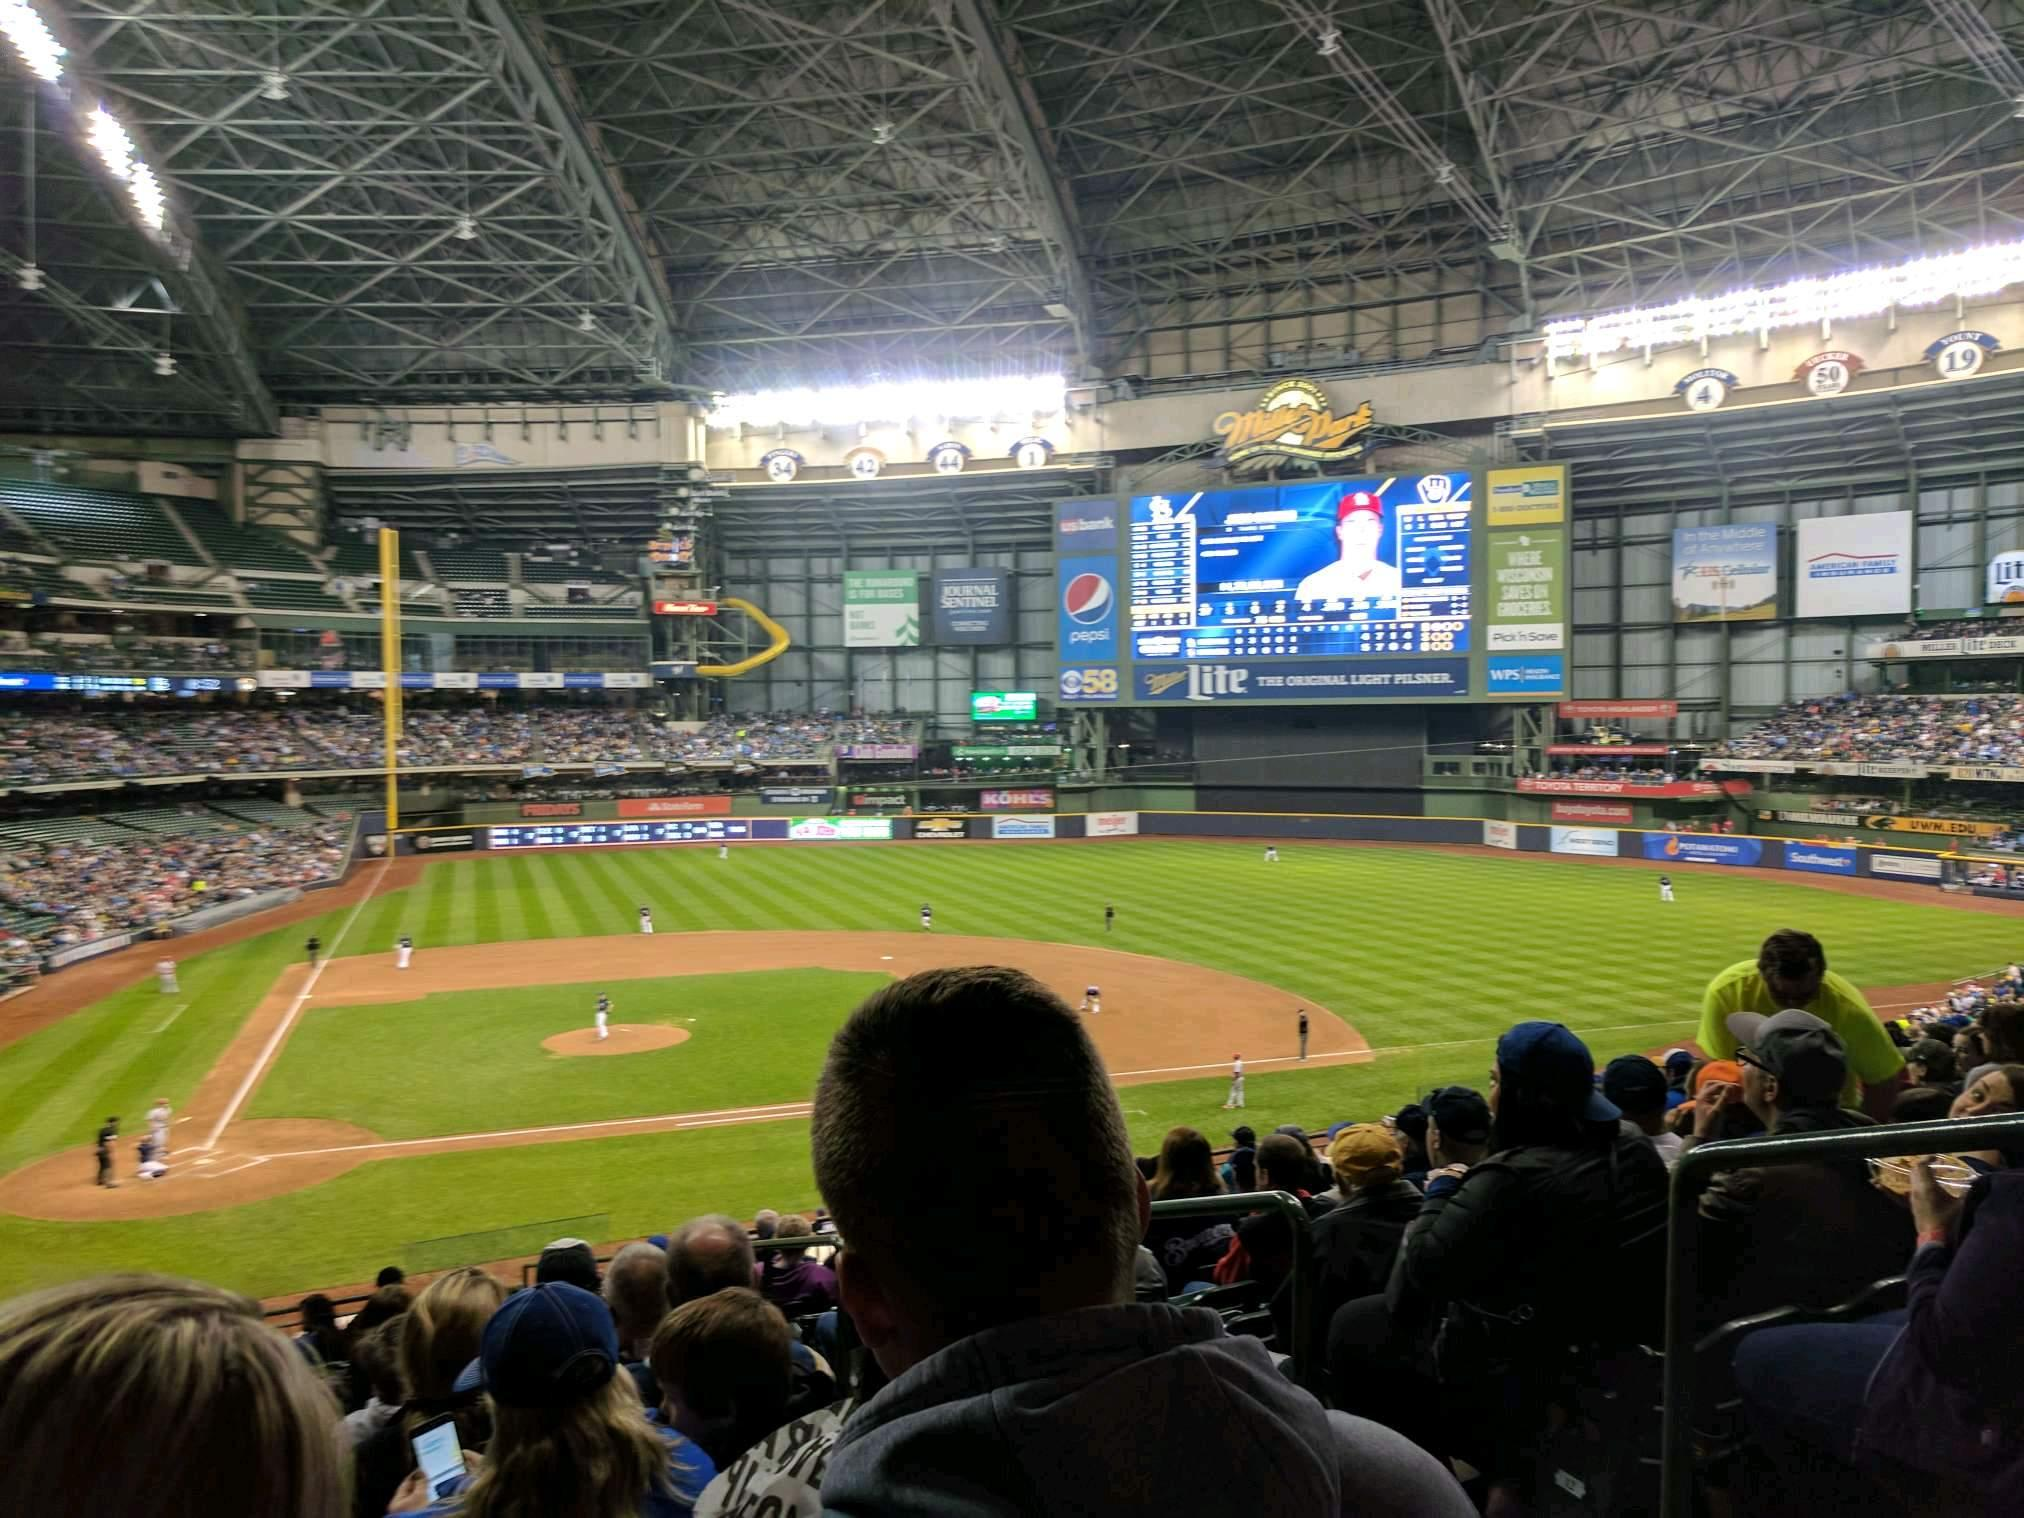 Miller Park Section 215 Row 15 Seat 20